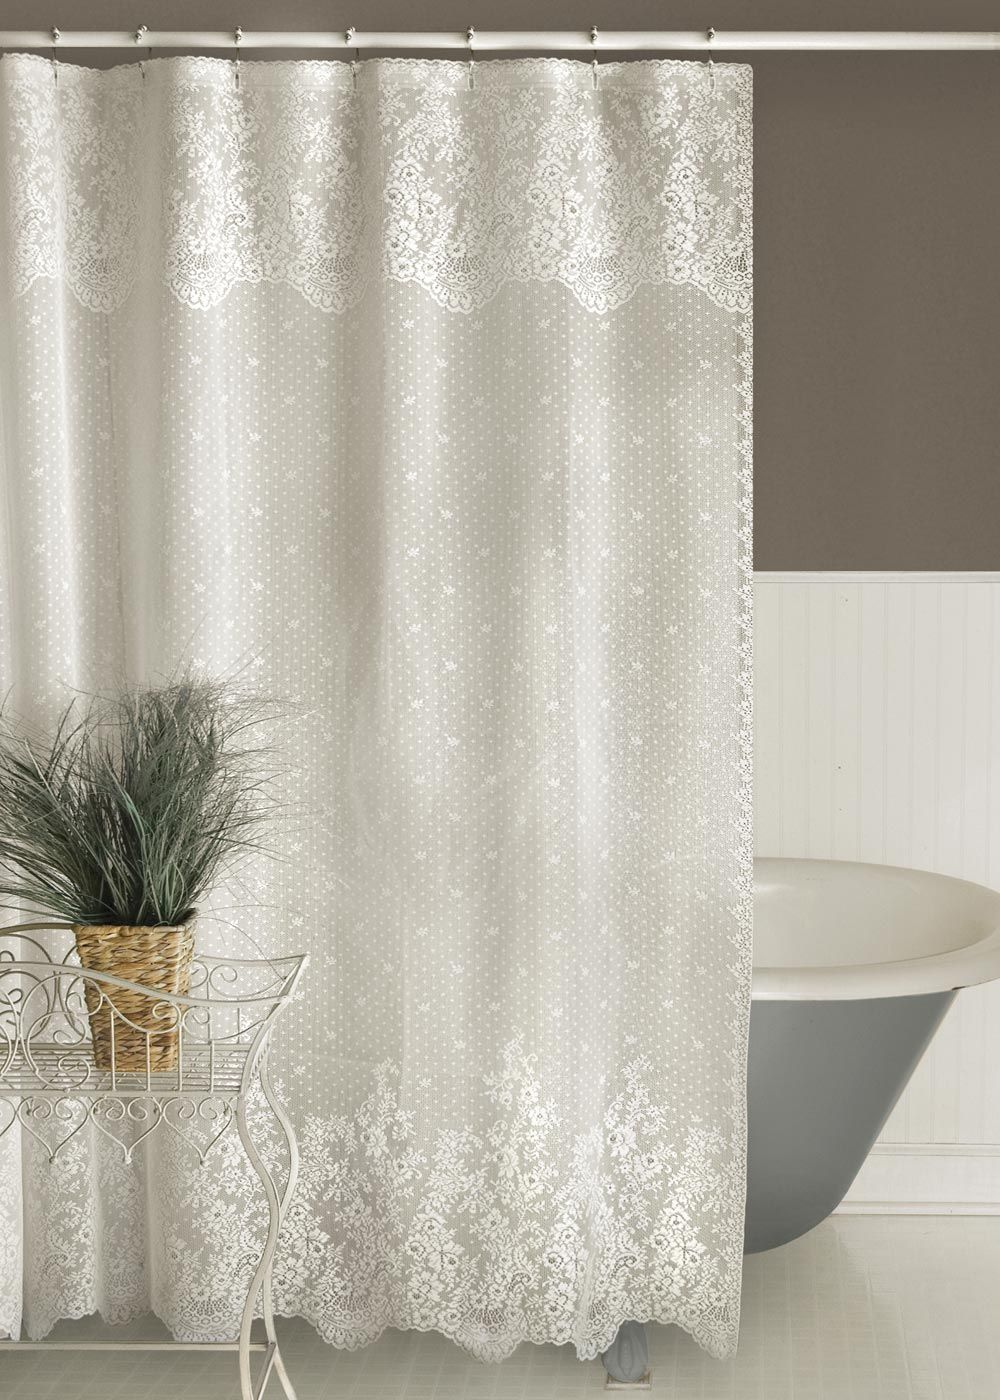 Genial Floret Shower Curtain   What A Beautiful Shower Curtain For The Vintage  Bathroom! #vintage #delicate #stylish